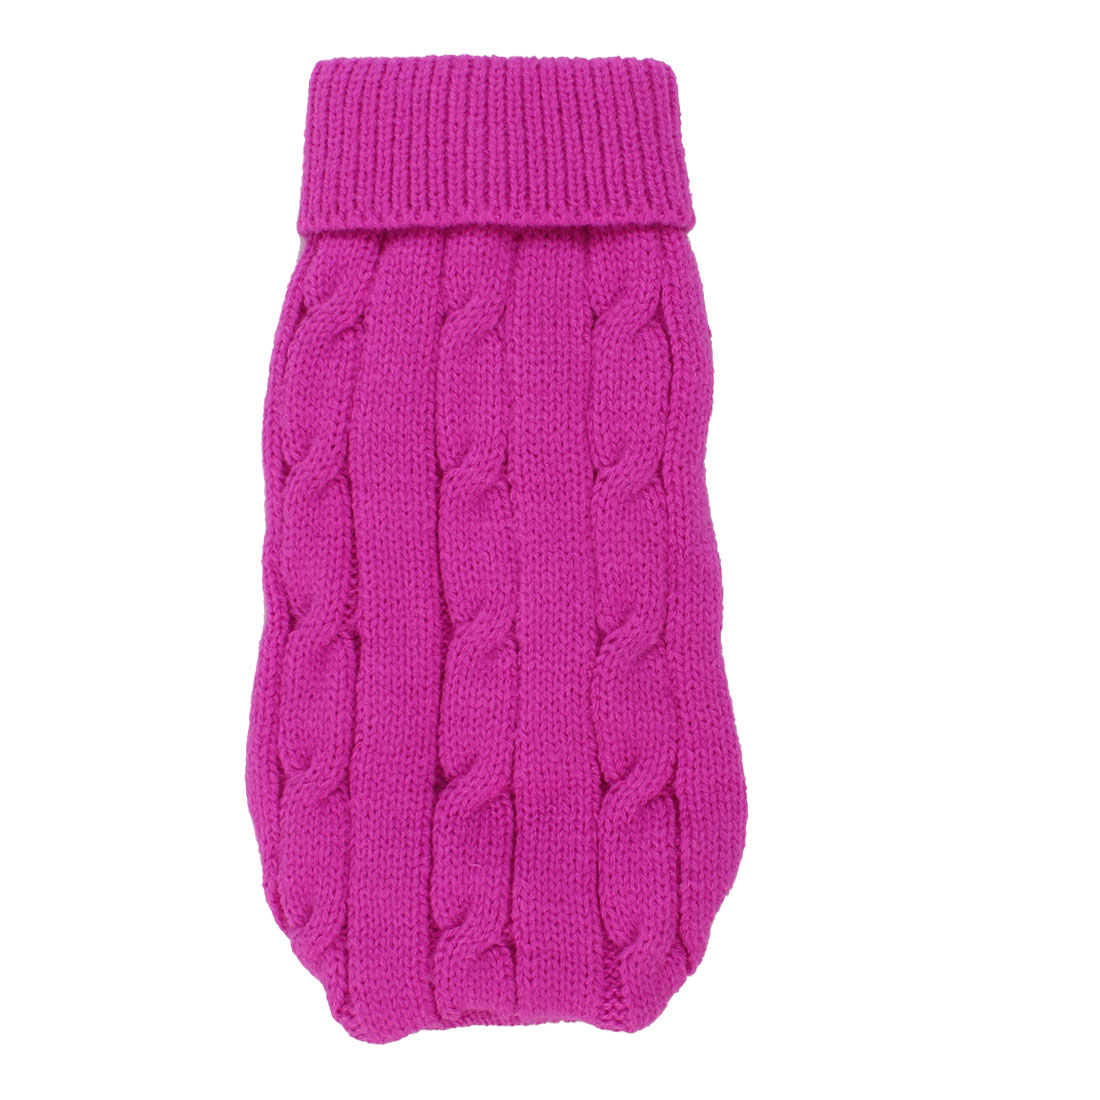 Pet Chihuahua Acrylic Twisted Knit Ribbed Hem Turtleneck Apparel Sweater Fuchsia Size 10